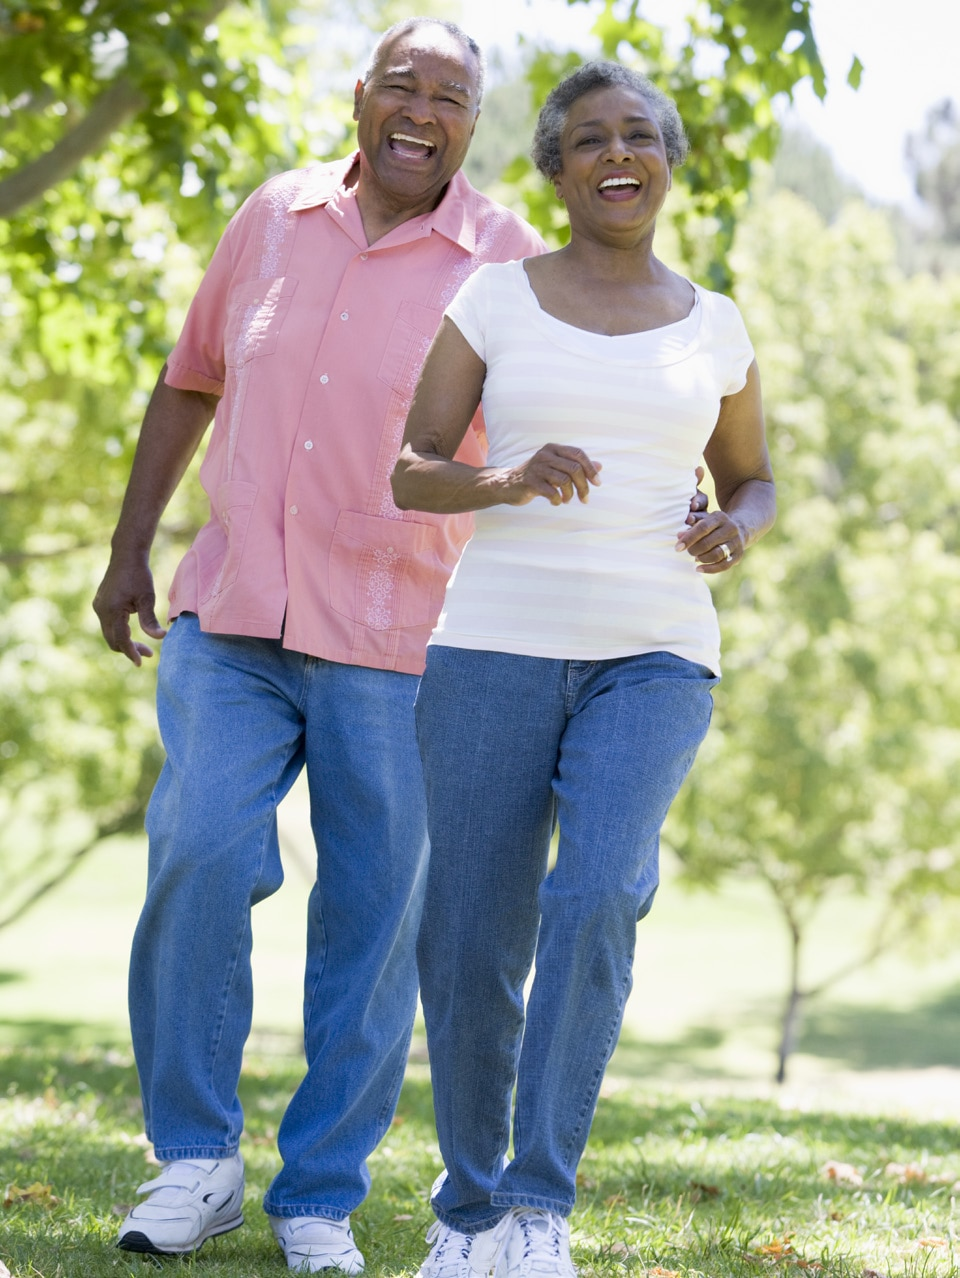 Elderly couple walking together through the park.